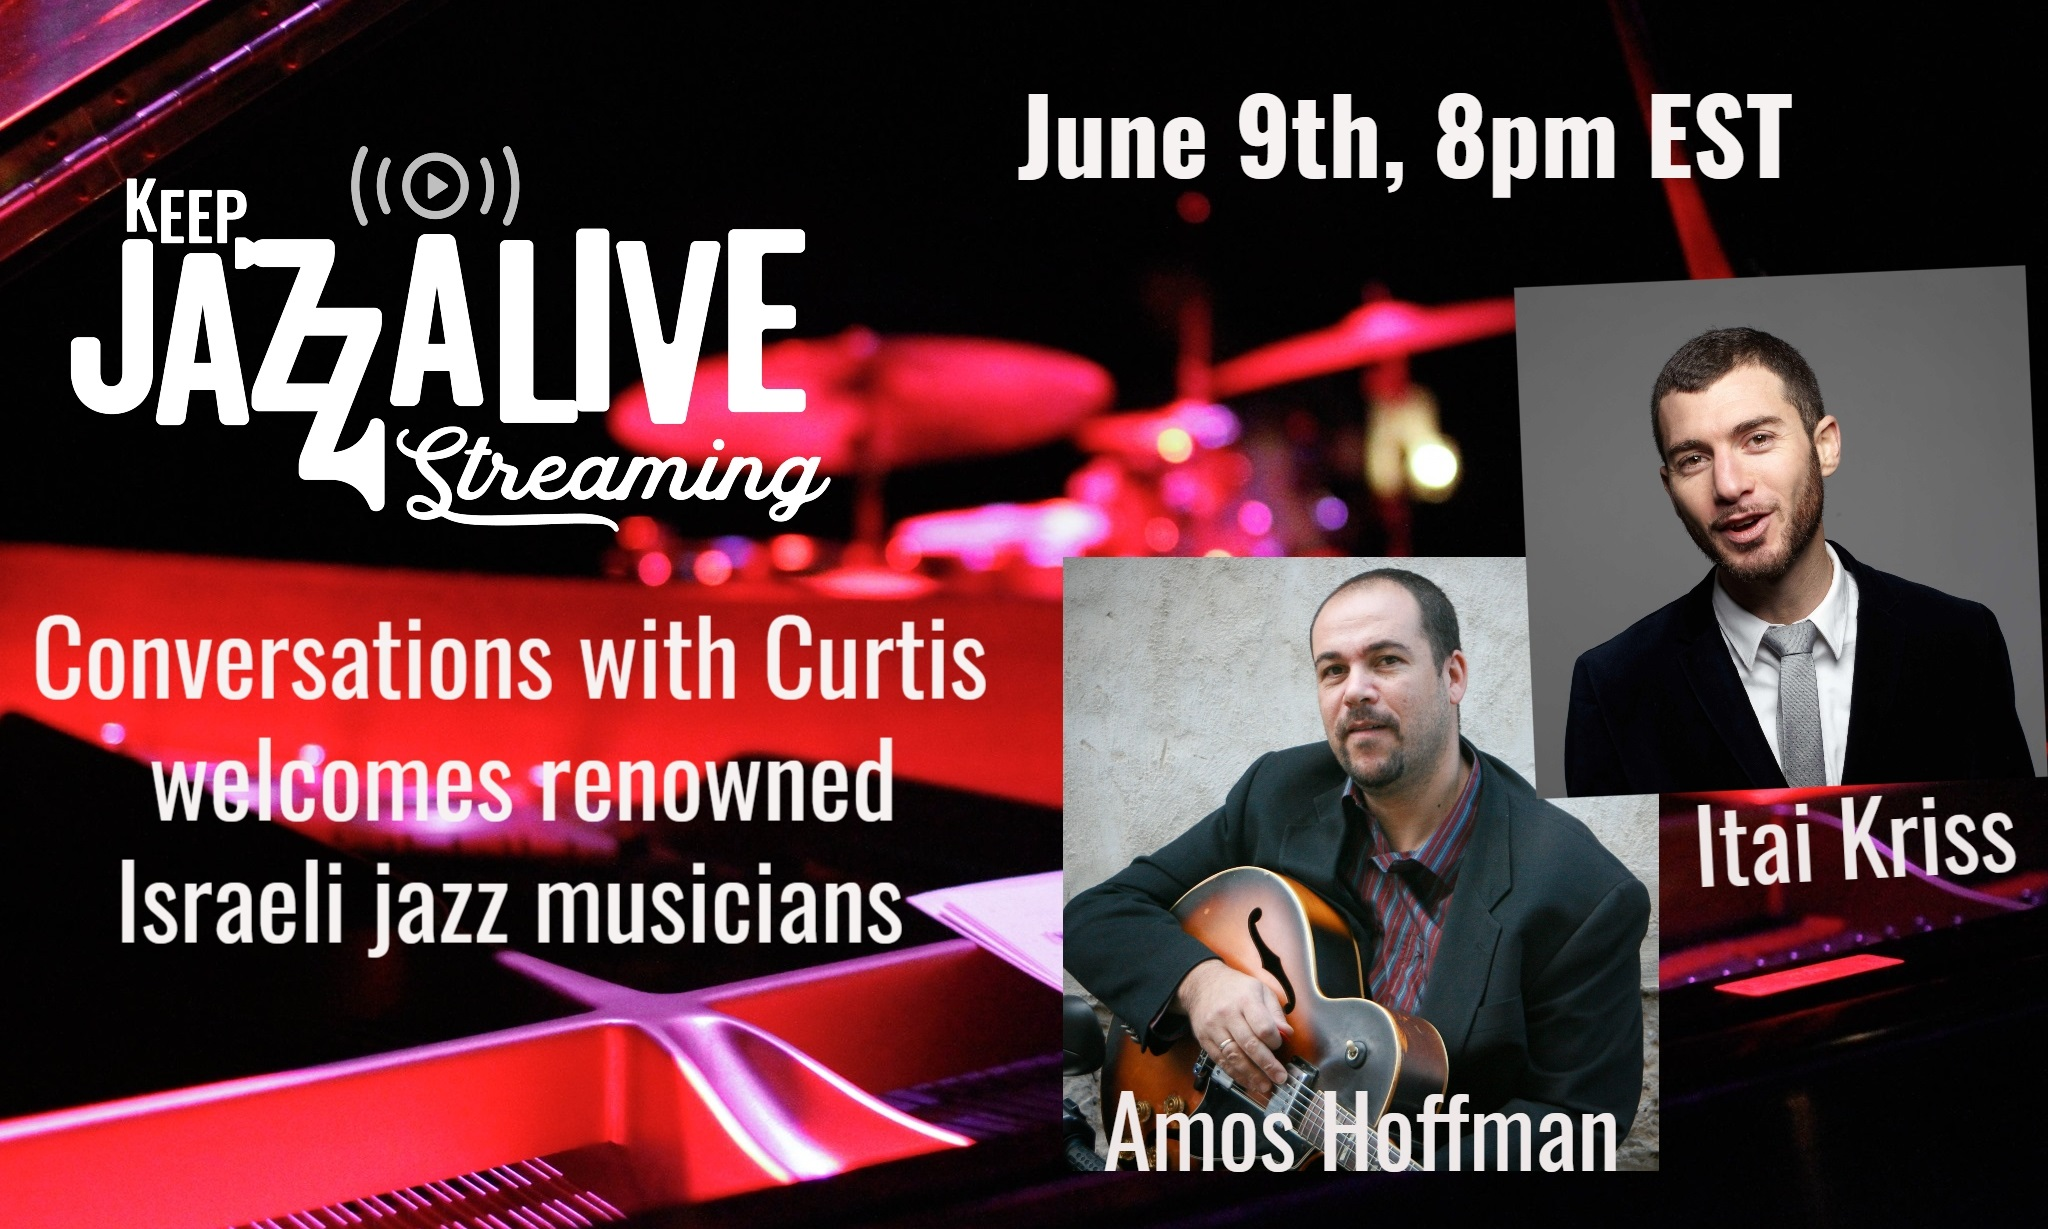 Keep Jazz A-live-streaming:  Conversations With Curtis Welcomes Nicholas Payton